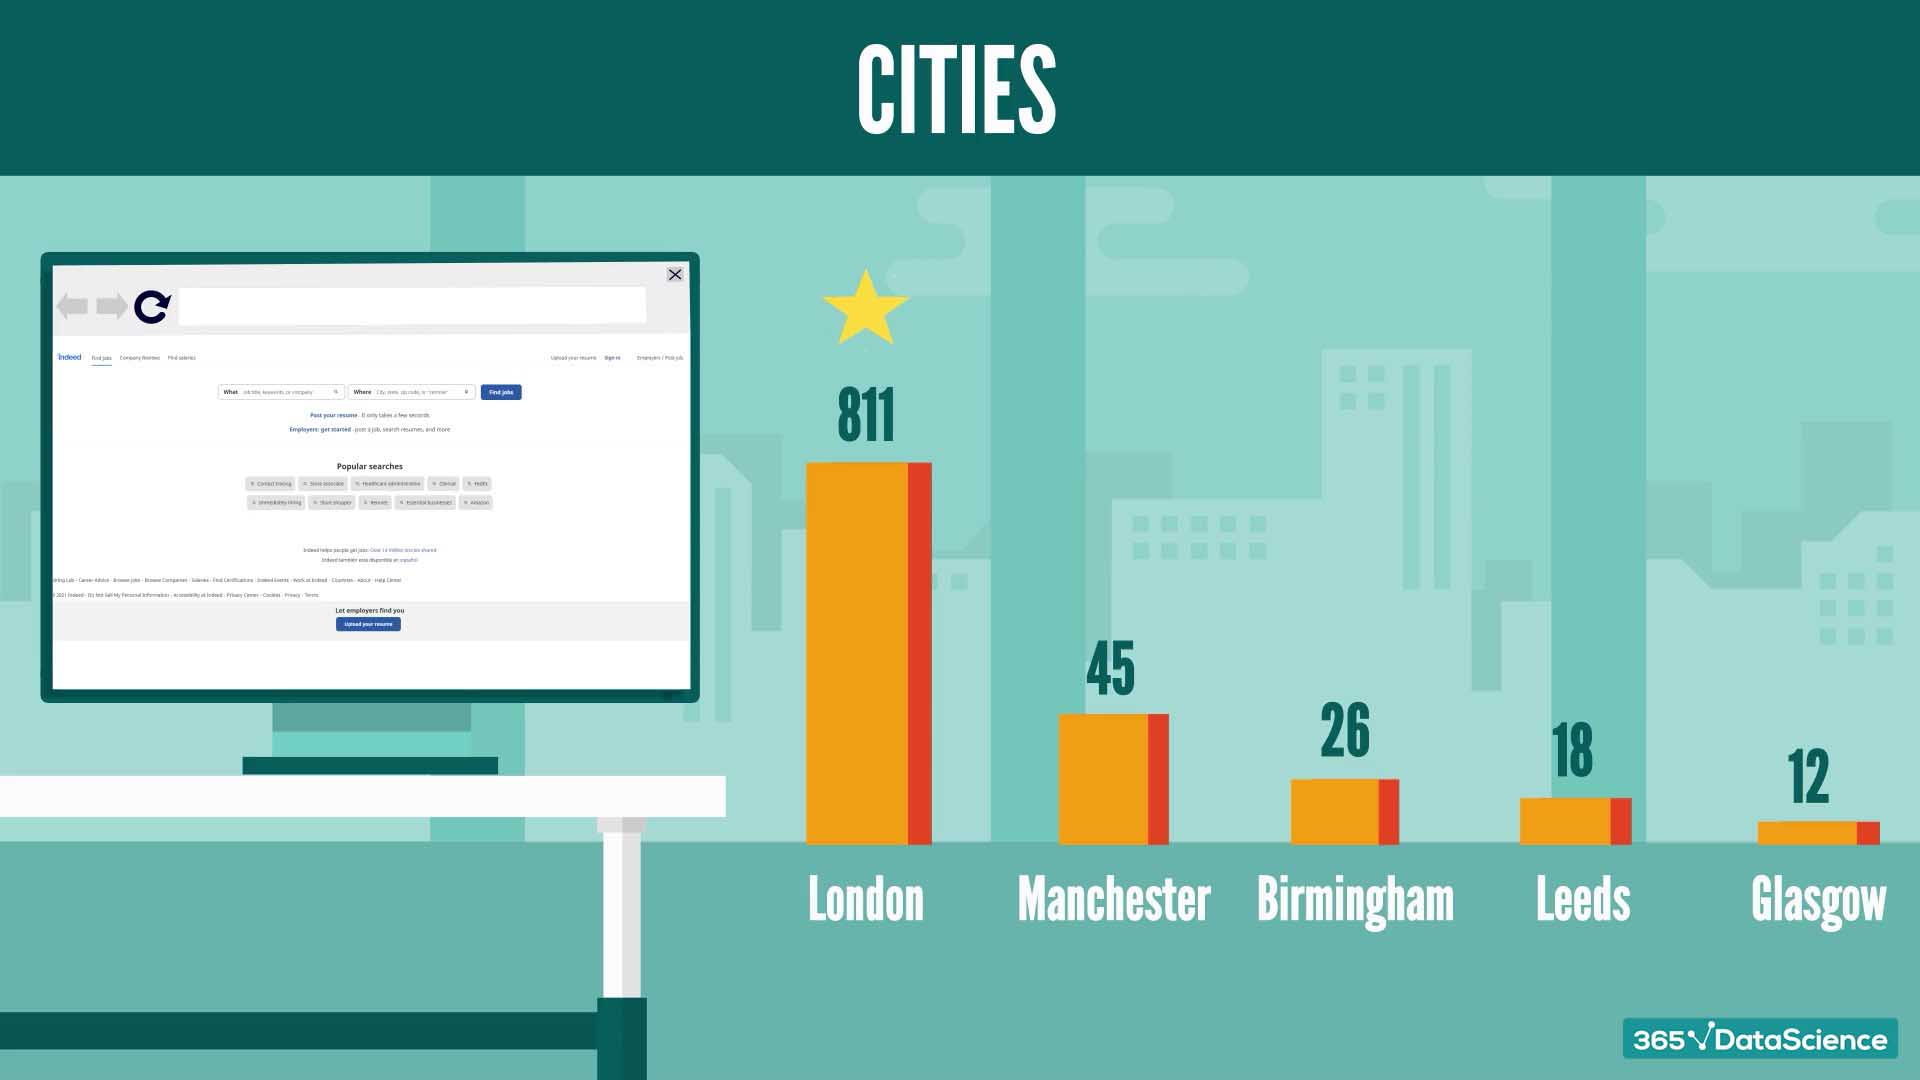 UK cities with the highest number of data scientist job openings